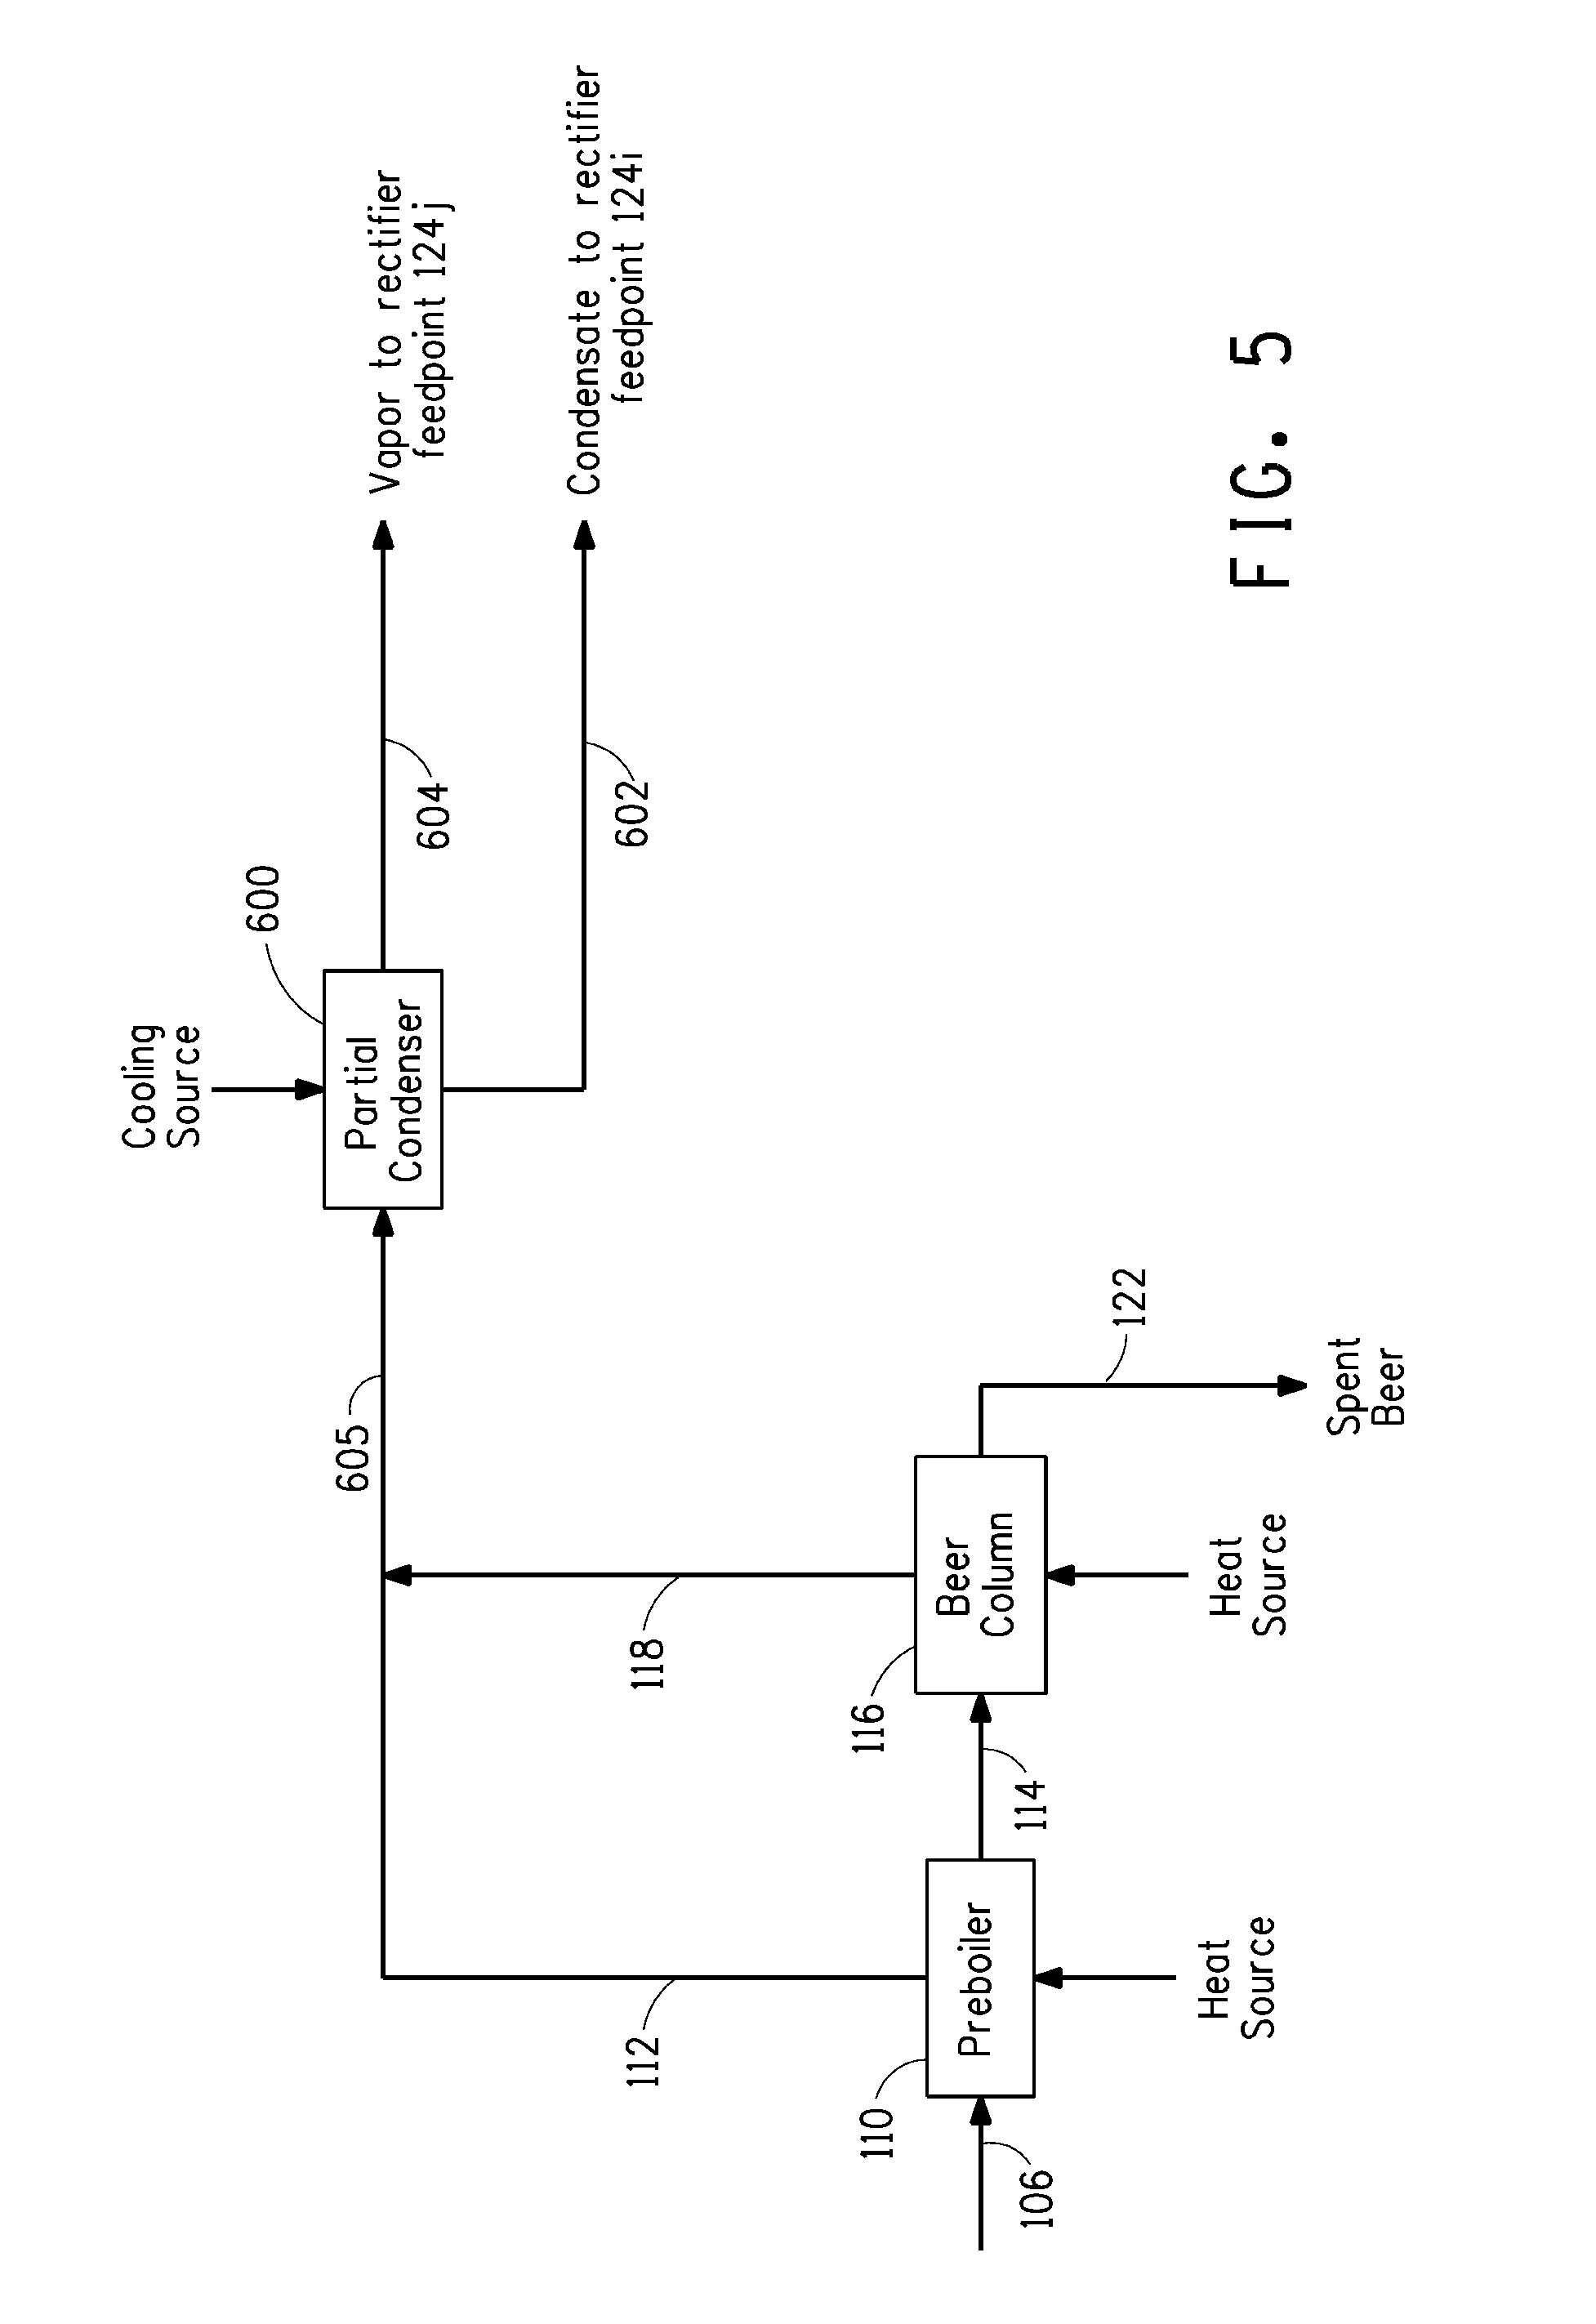 patent us7666282 - process for providing ethanol